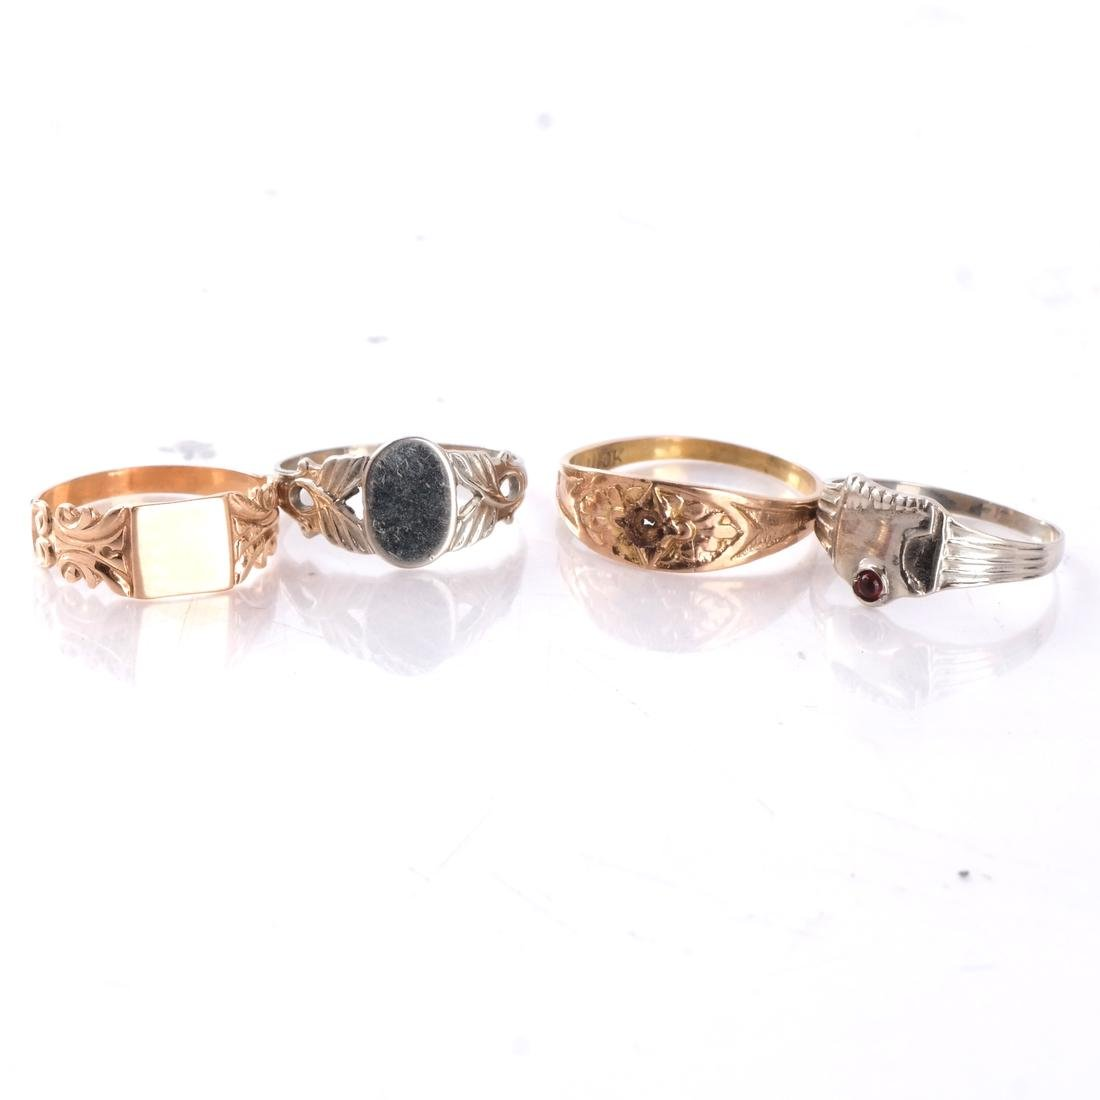 14k Baby's Rings in White and Yellow Gold - 3